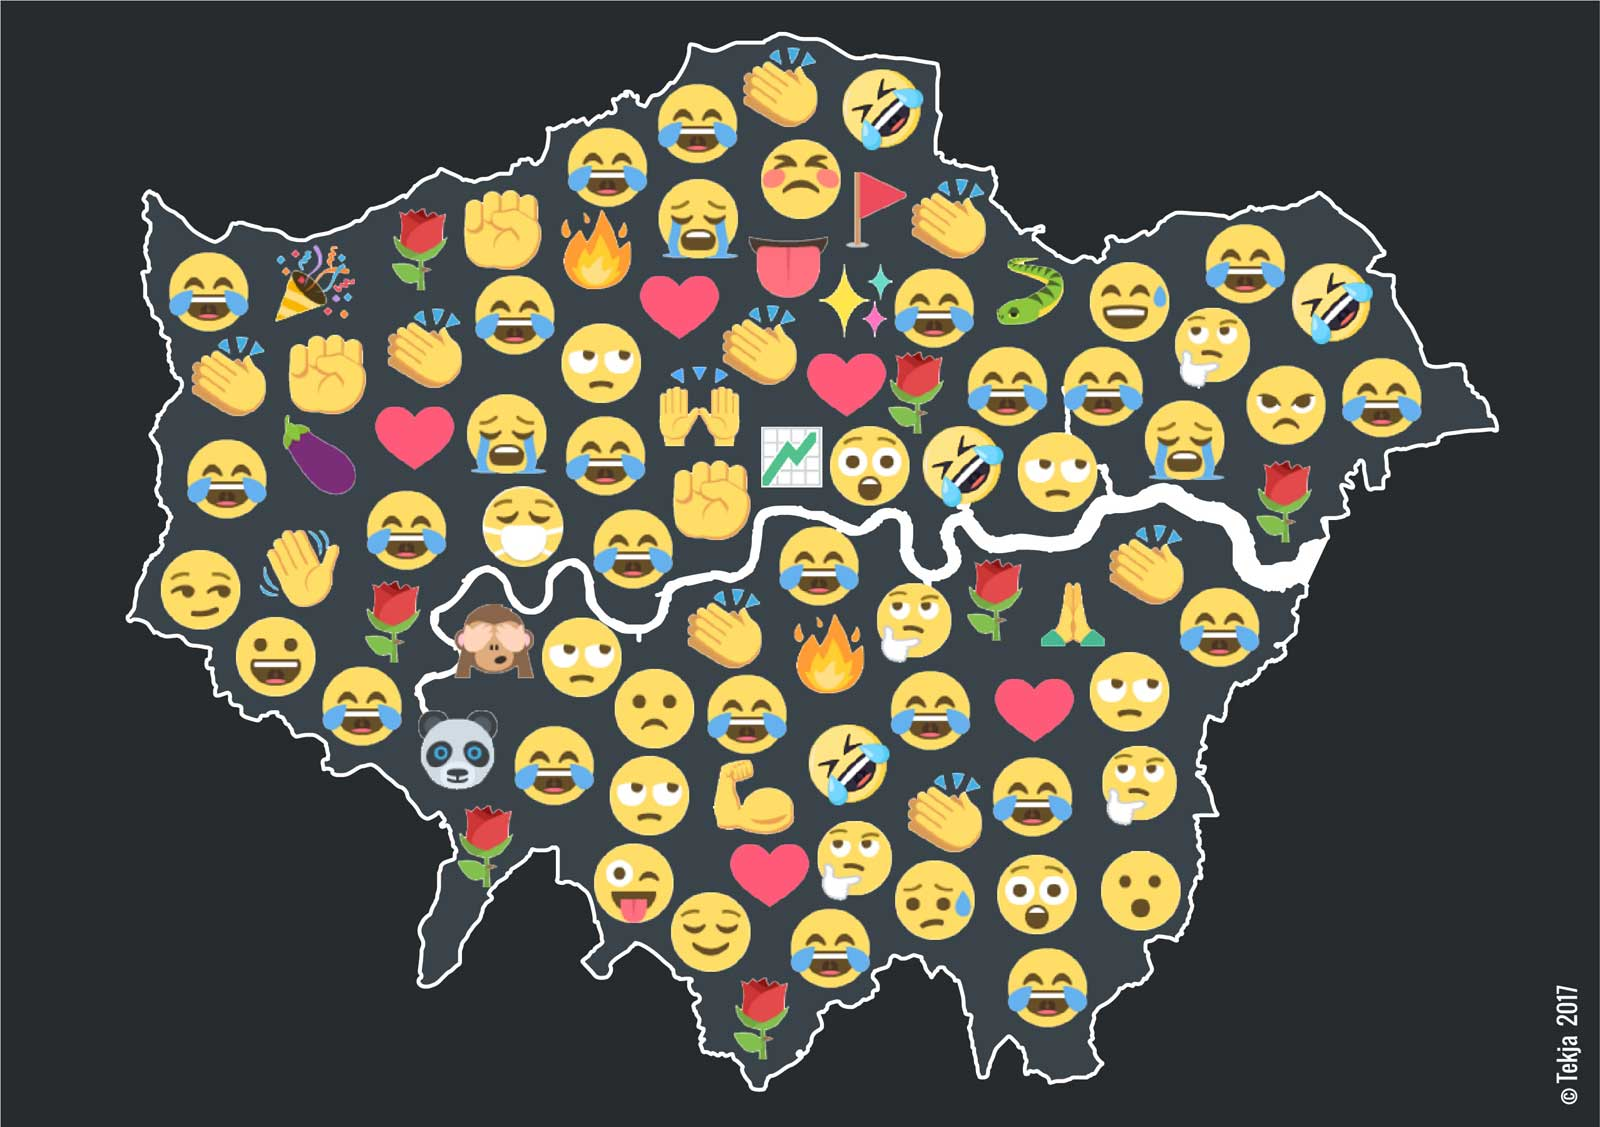 Data visualisations of London's emoji use.